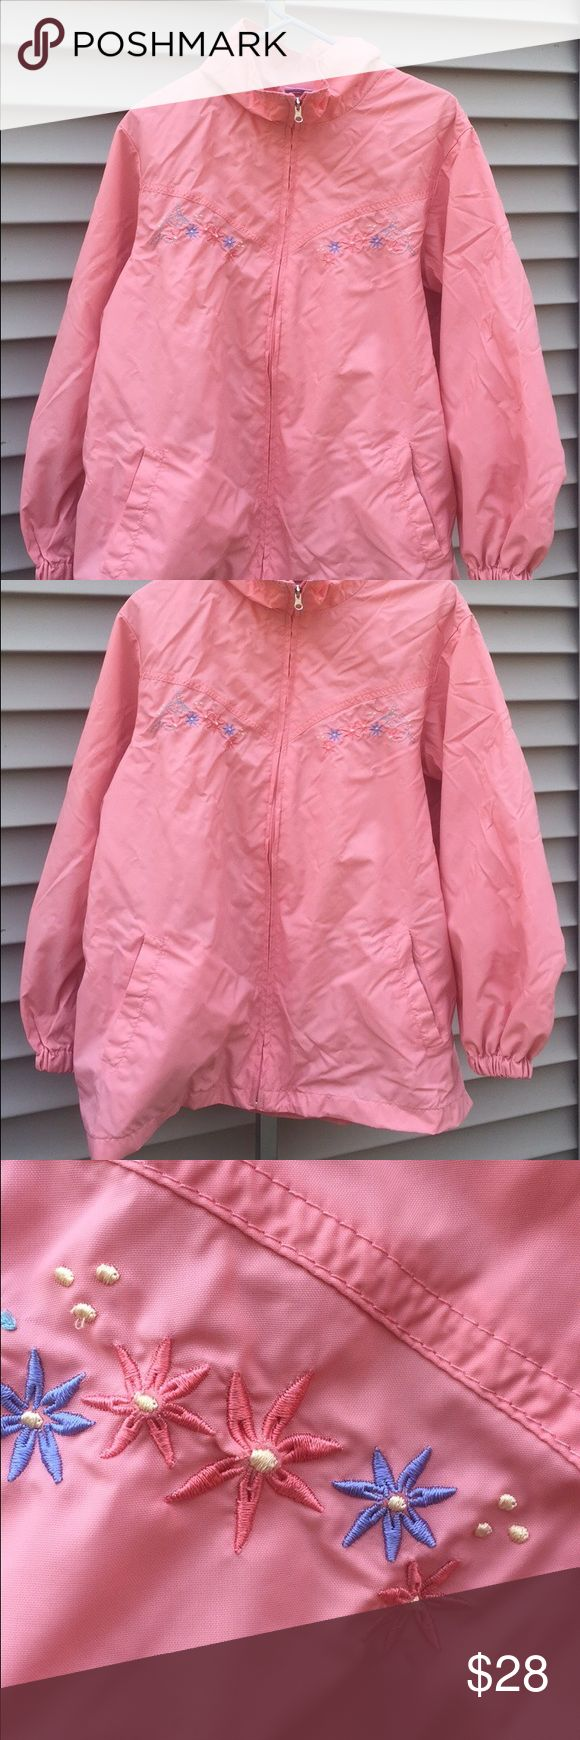 Blair Lightweight Pink Windbreaker Jacket w Floral Super cute. Great lightweight jacket. Adorable embroidery. Tagged XL.   #pink #floral #embroidery #embroidered #flowers #jacket #coat #windbreaker #jackets #coats #windbreakers #xl #extralarge #babypink #hipster #tumblr #grunge #vintagefeel #fashion #cool #cheap #bundlediscount #palepink #babypink #colorful #betweenseasons #lightweight #lightweightjacket 💥30% off all bundles💥 Jackets & Coats